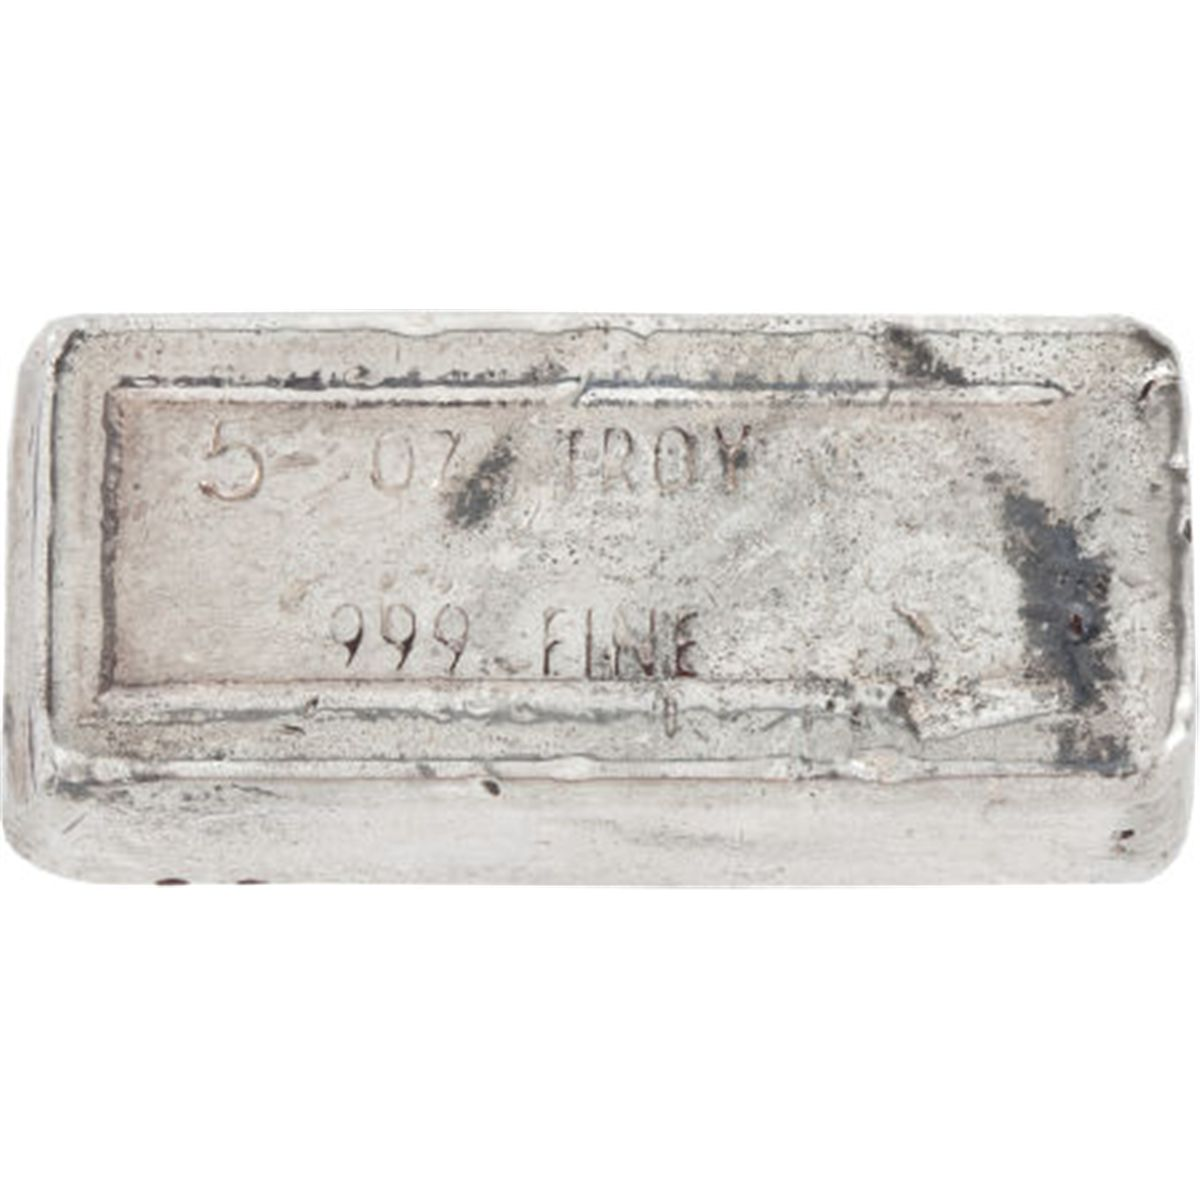 A 5 Ounce Sterling Silver Bar 1974 Total 1